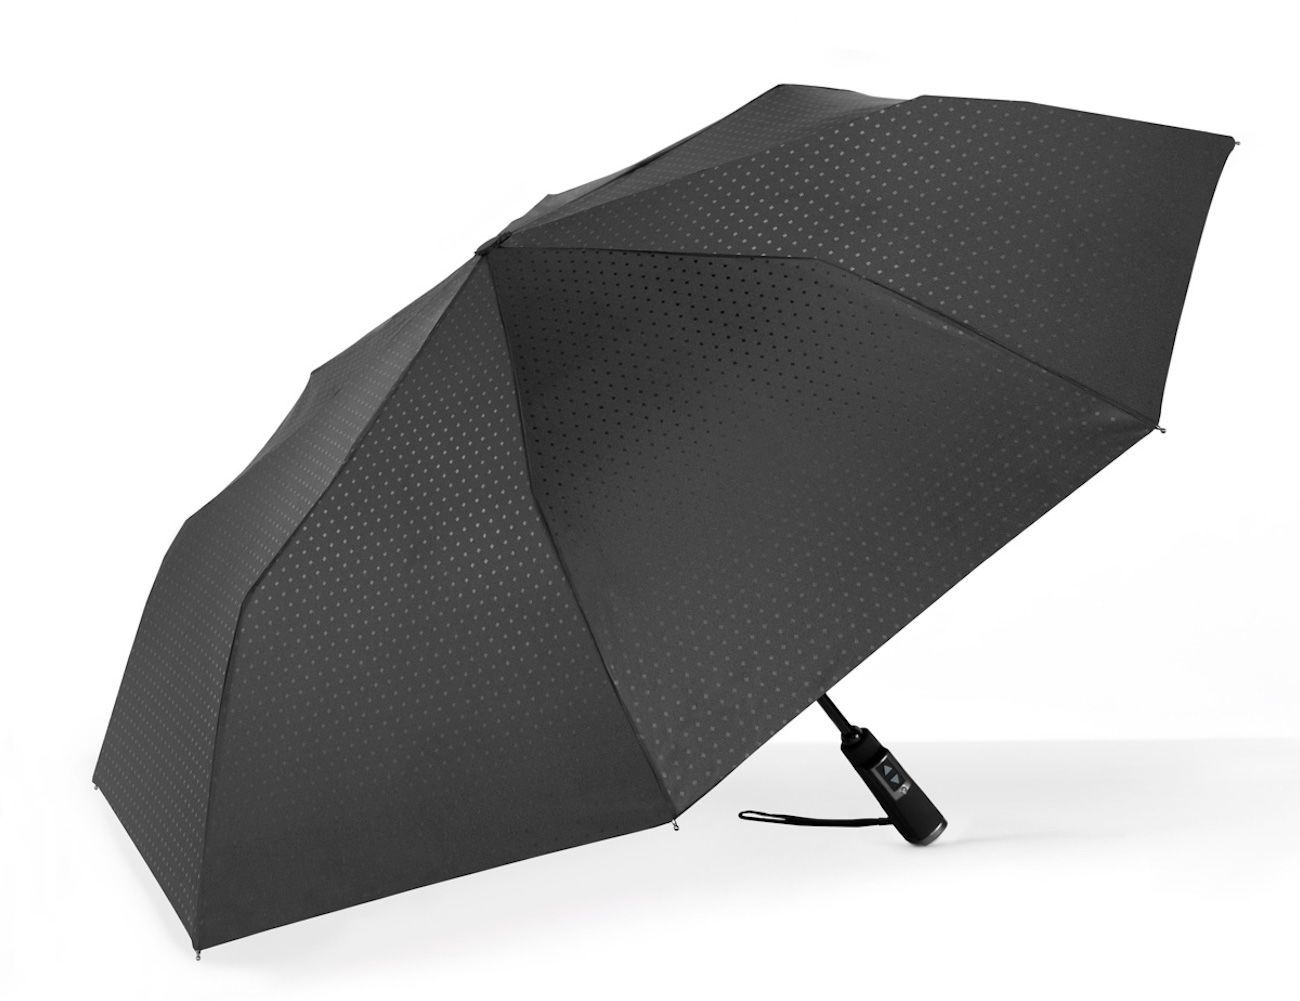 ShedRain e-Motion Automatic Umbrella